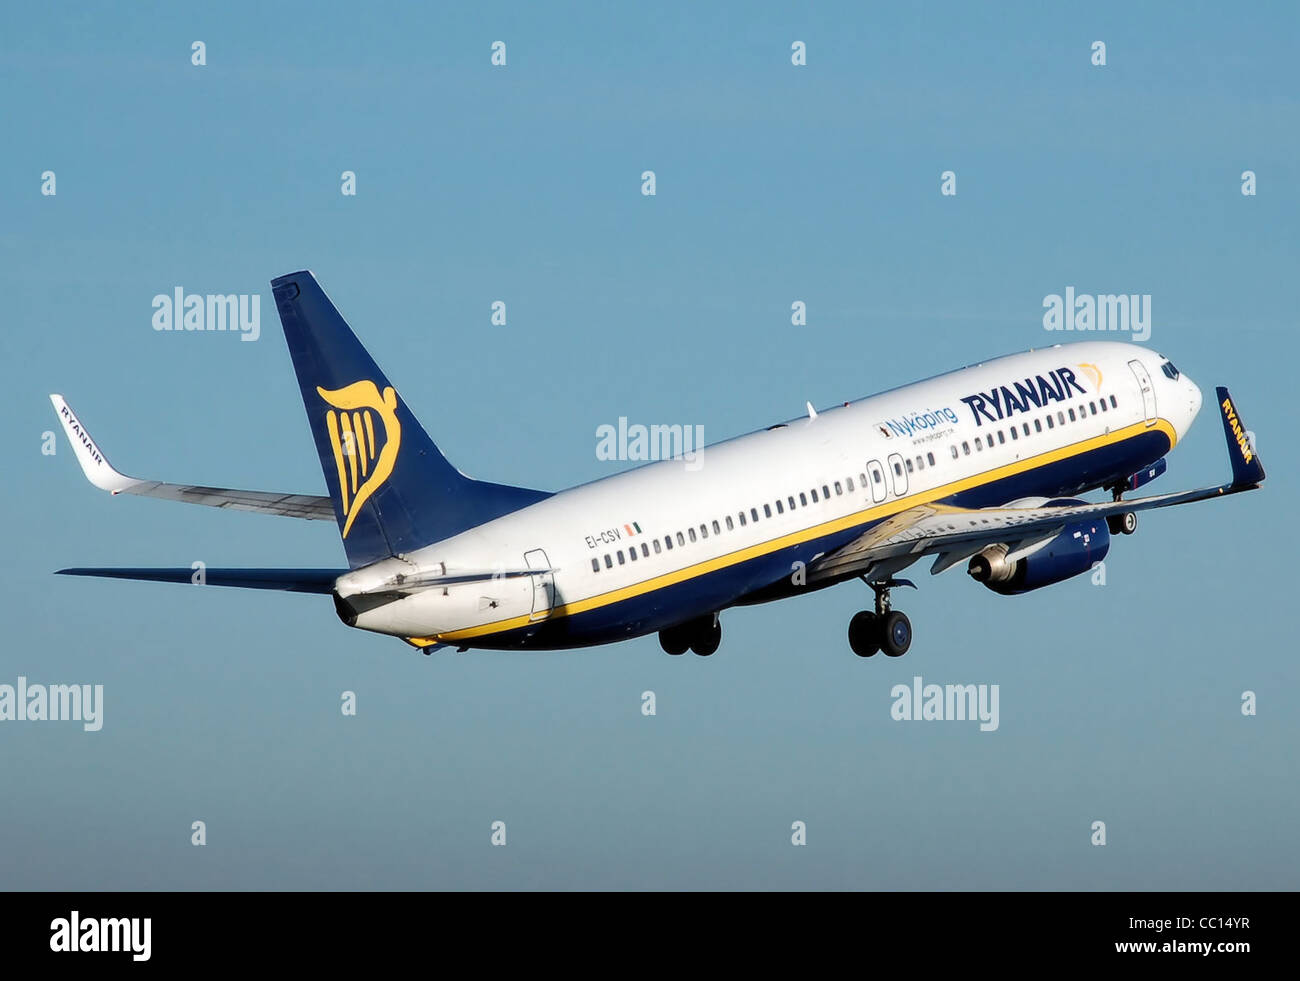 Ryanair Boeing 737-800 (EI-CSV), marked Nykoping, takes off from London Luton Airport, England. - Stock Image